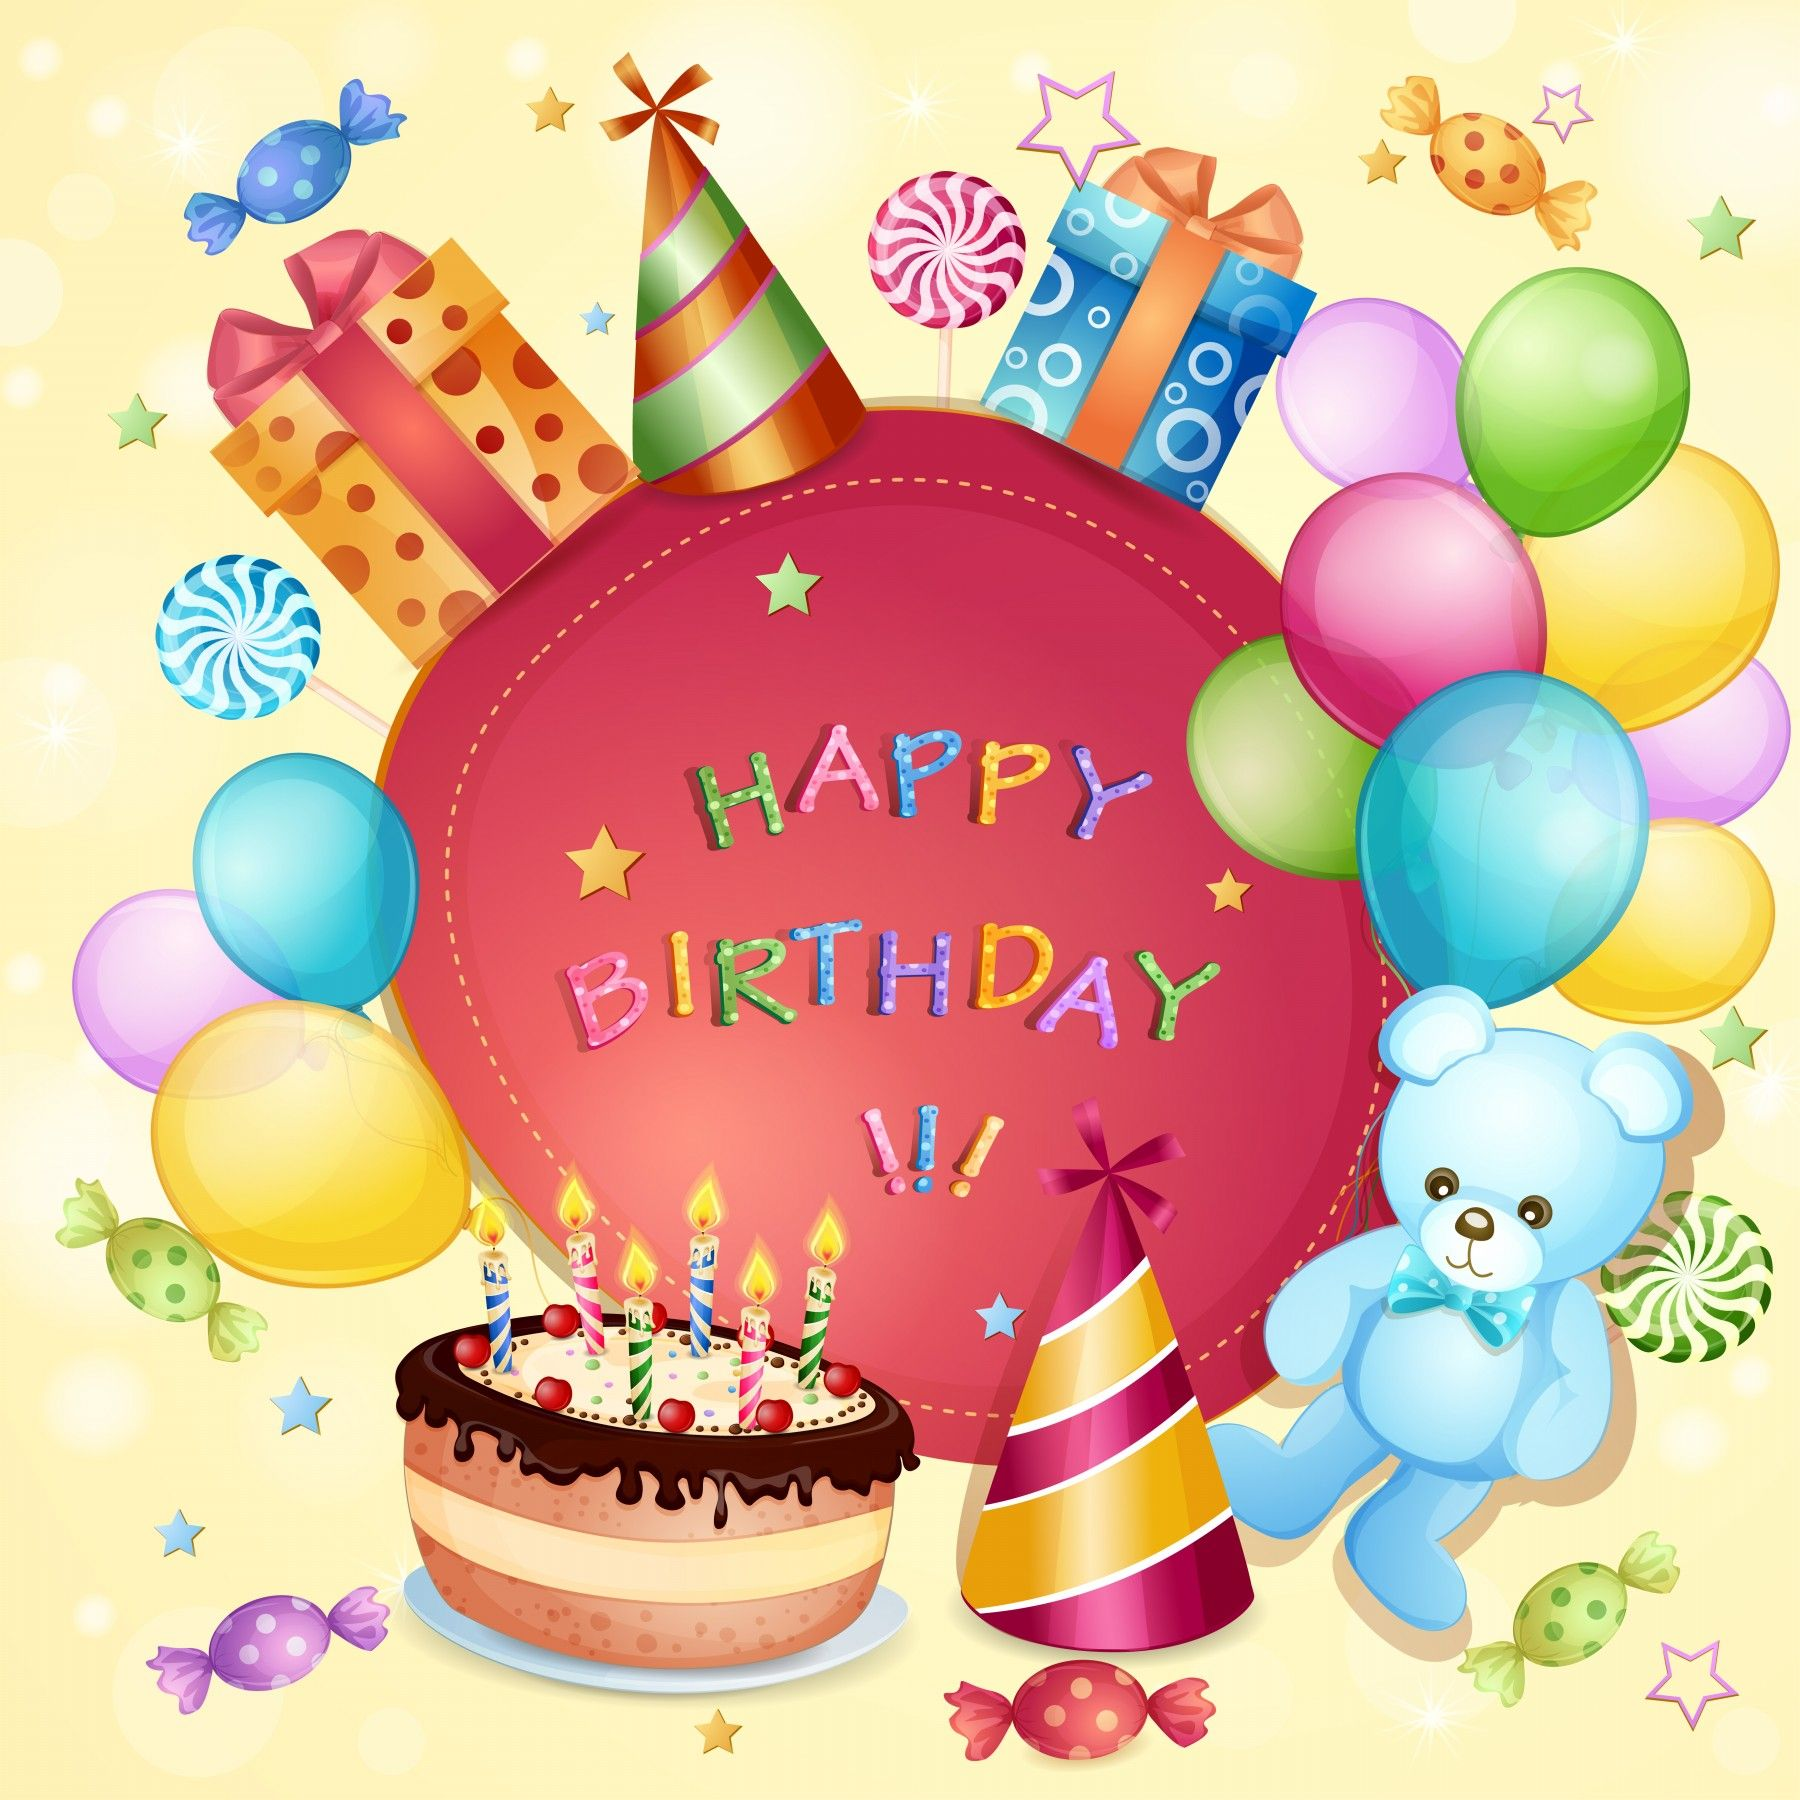 Happy Birthday New Images   Google Search